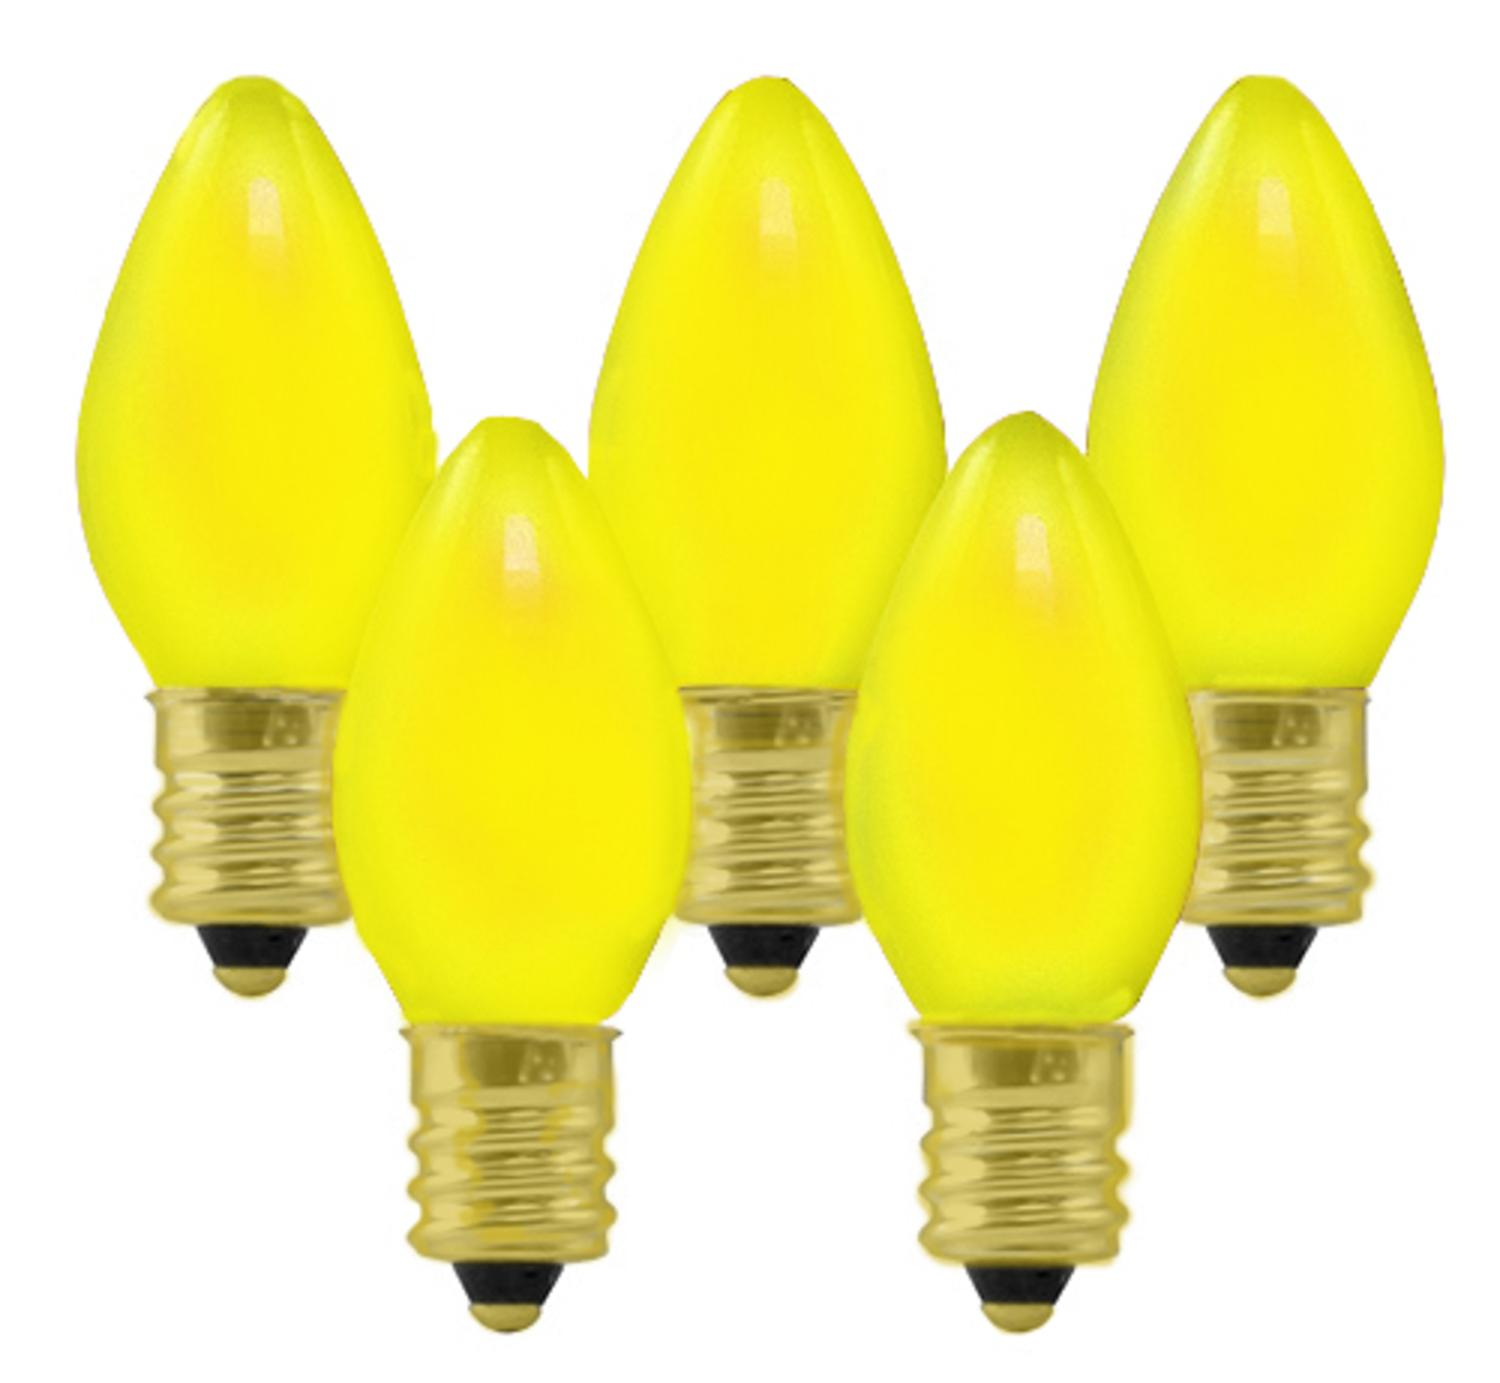 Club Pack of 100 C7 Ceramic Yellow Replacement Christmas Light Bulbs